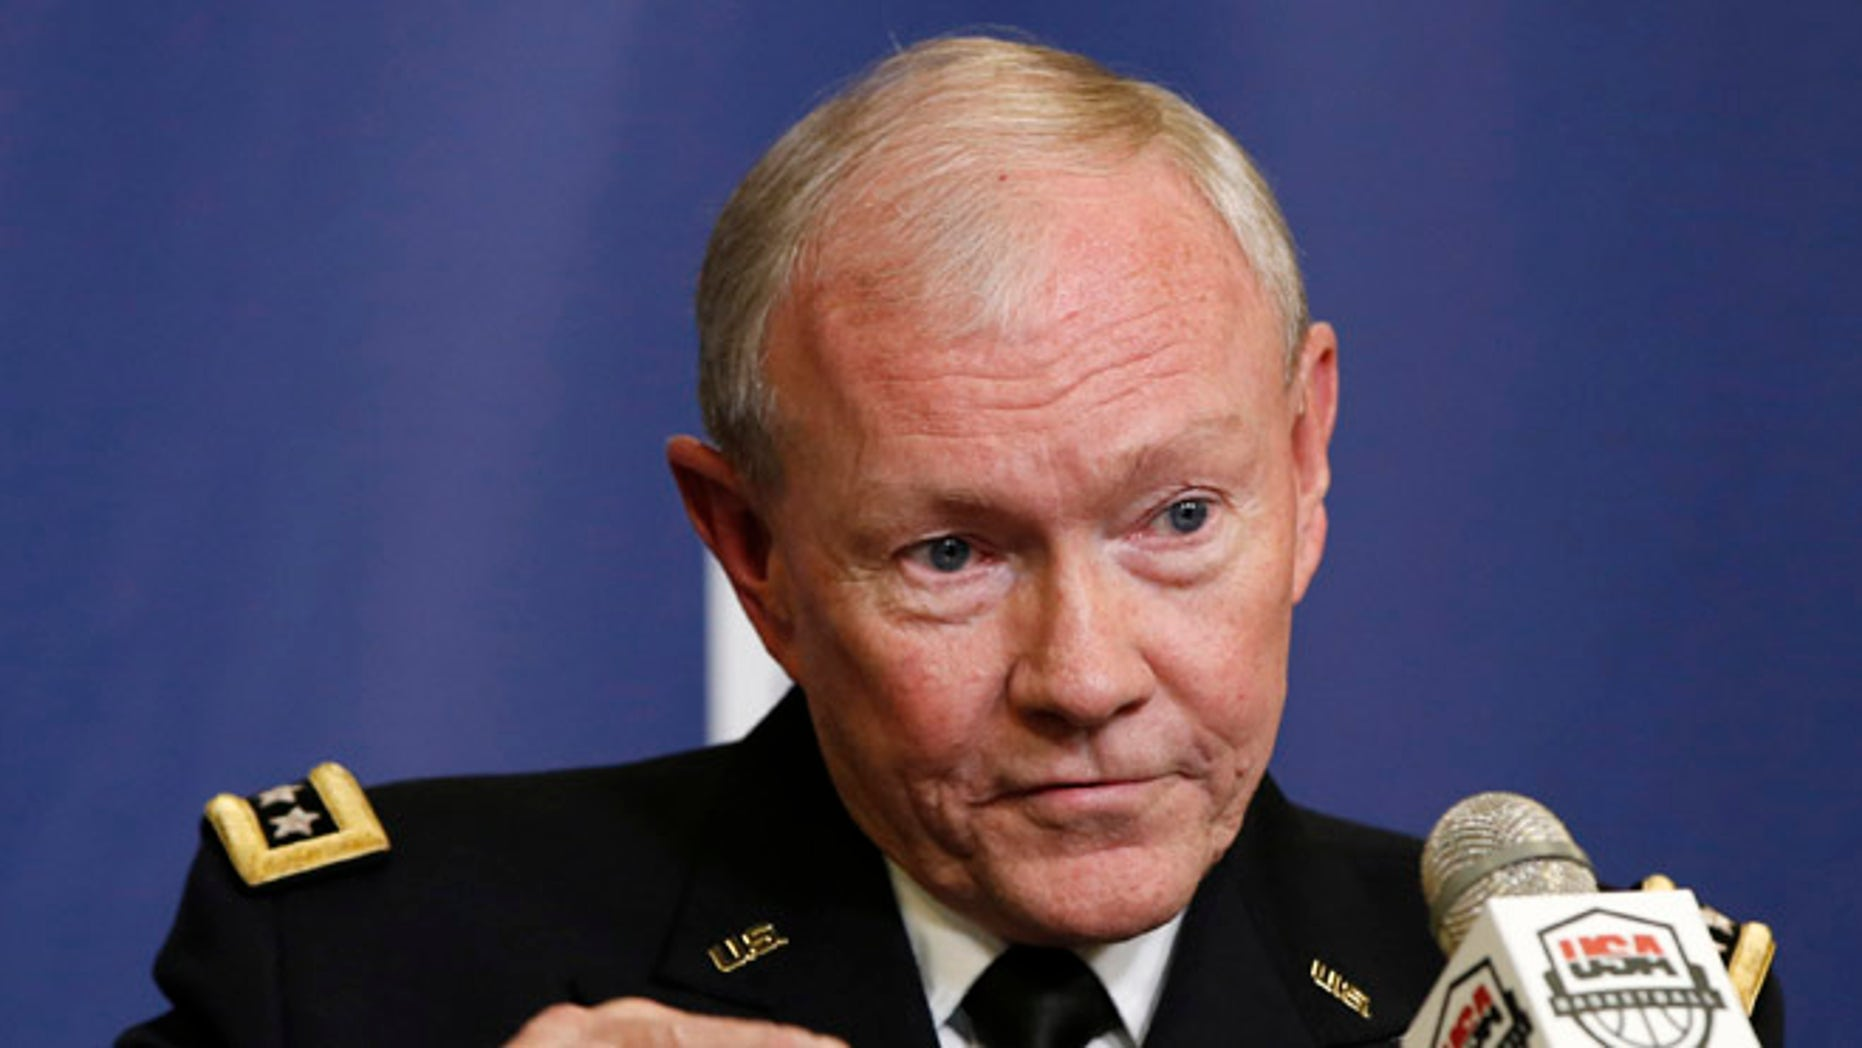 This Aug. 20, 2014 file photo shows Joint Chiefs Chairman Gen. Martin Dempsey speaking at Madison Square Garden in New York.